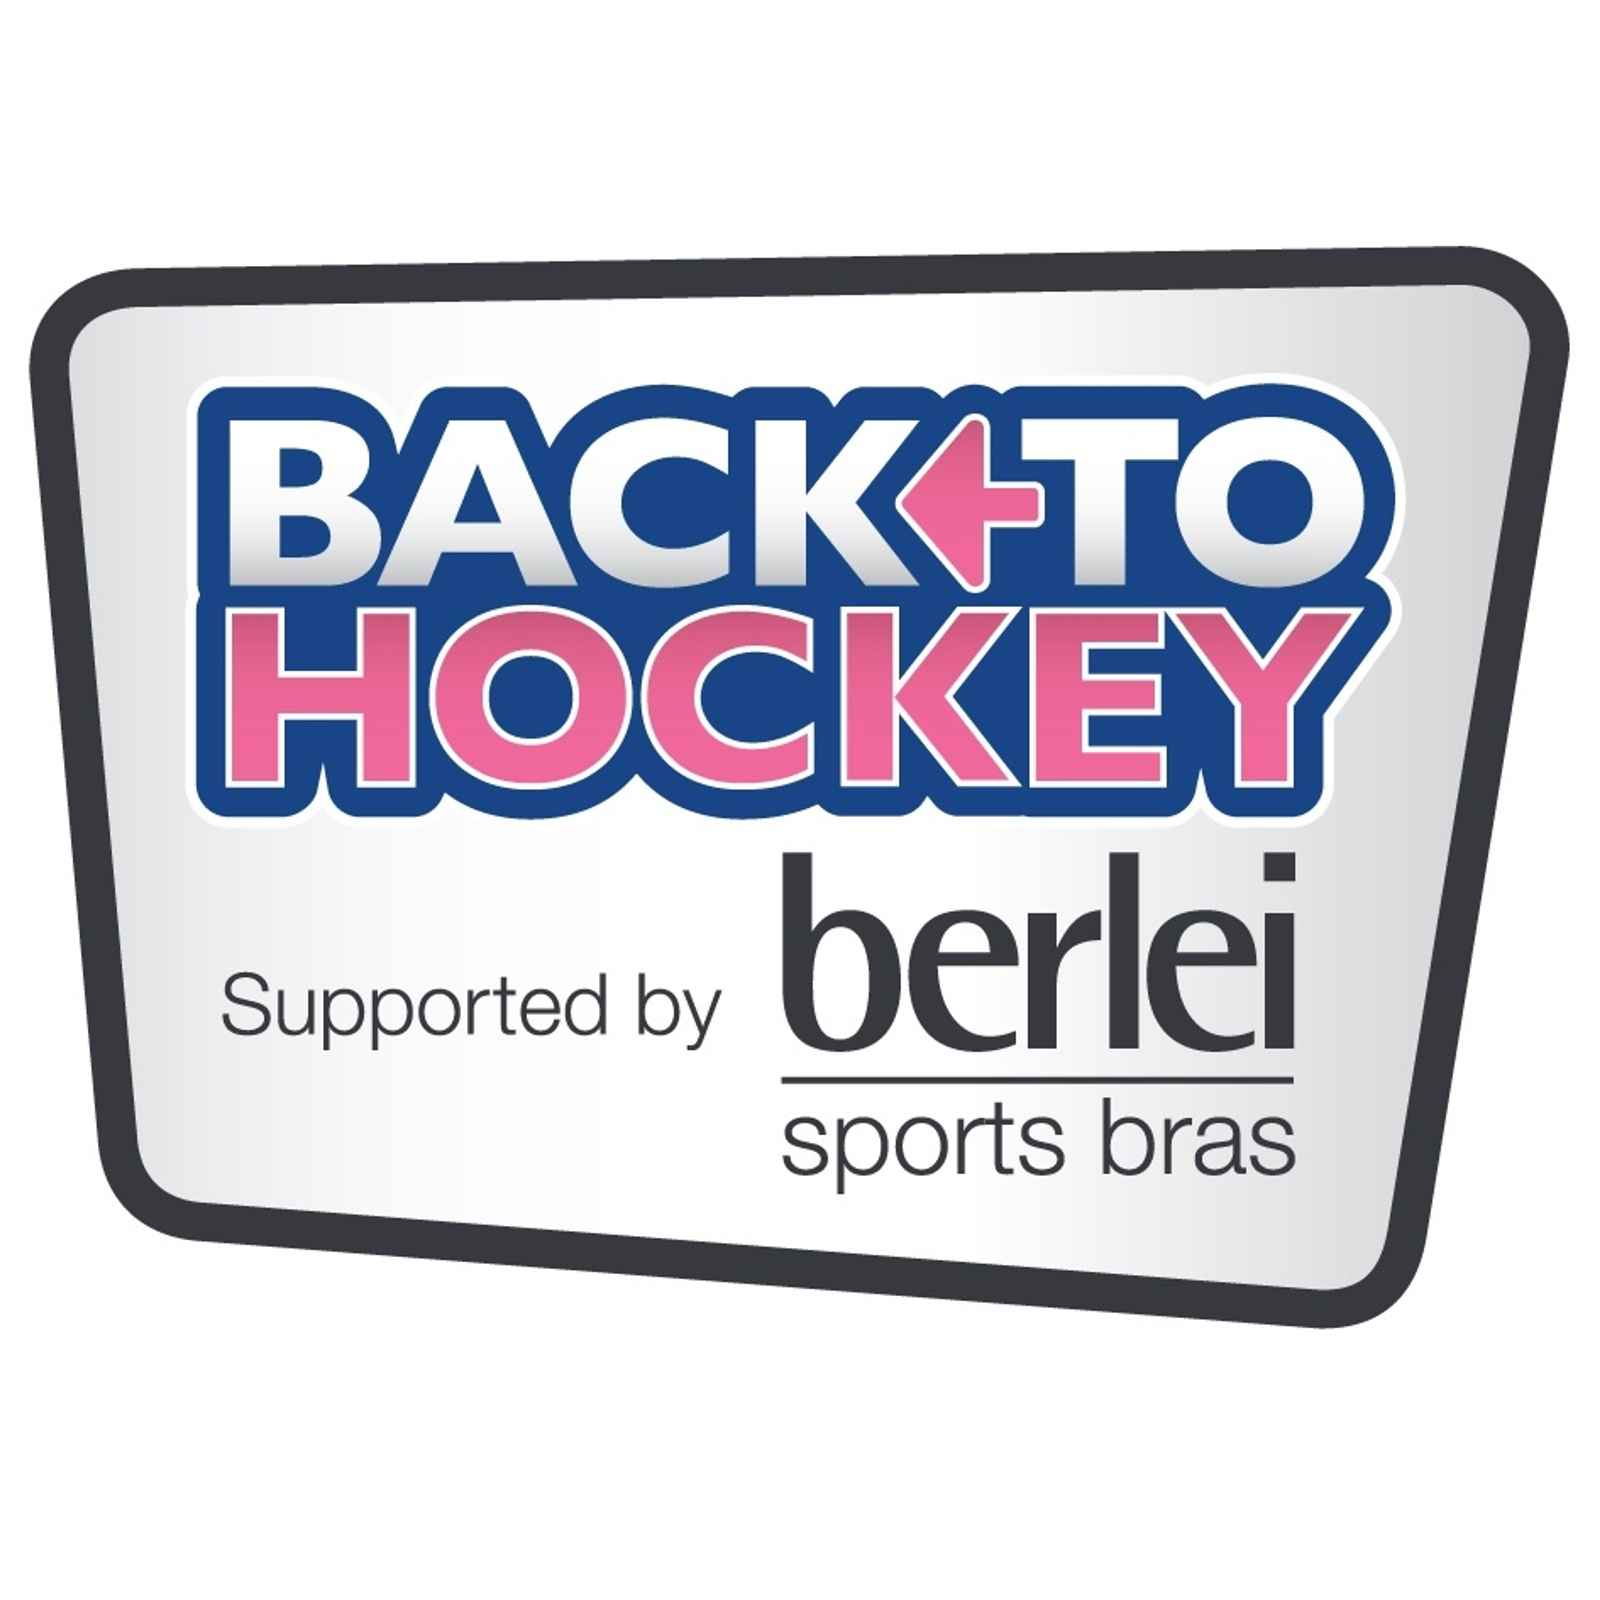 Back to Hockey coming soon to Sonning Hockey Club